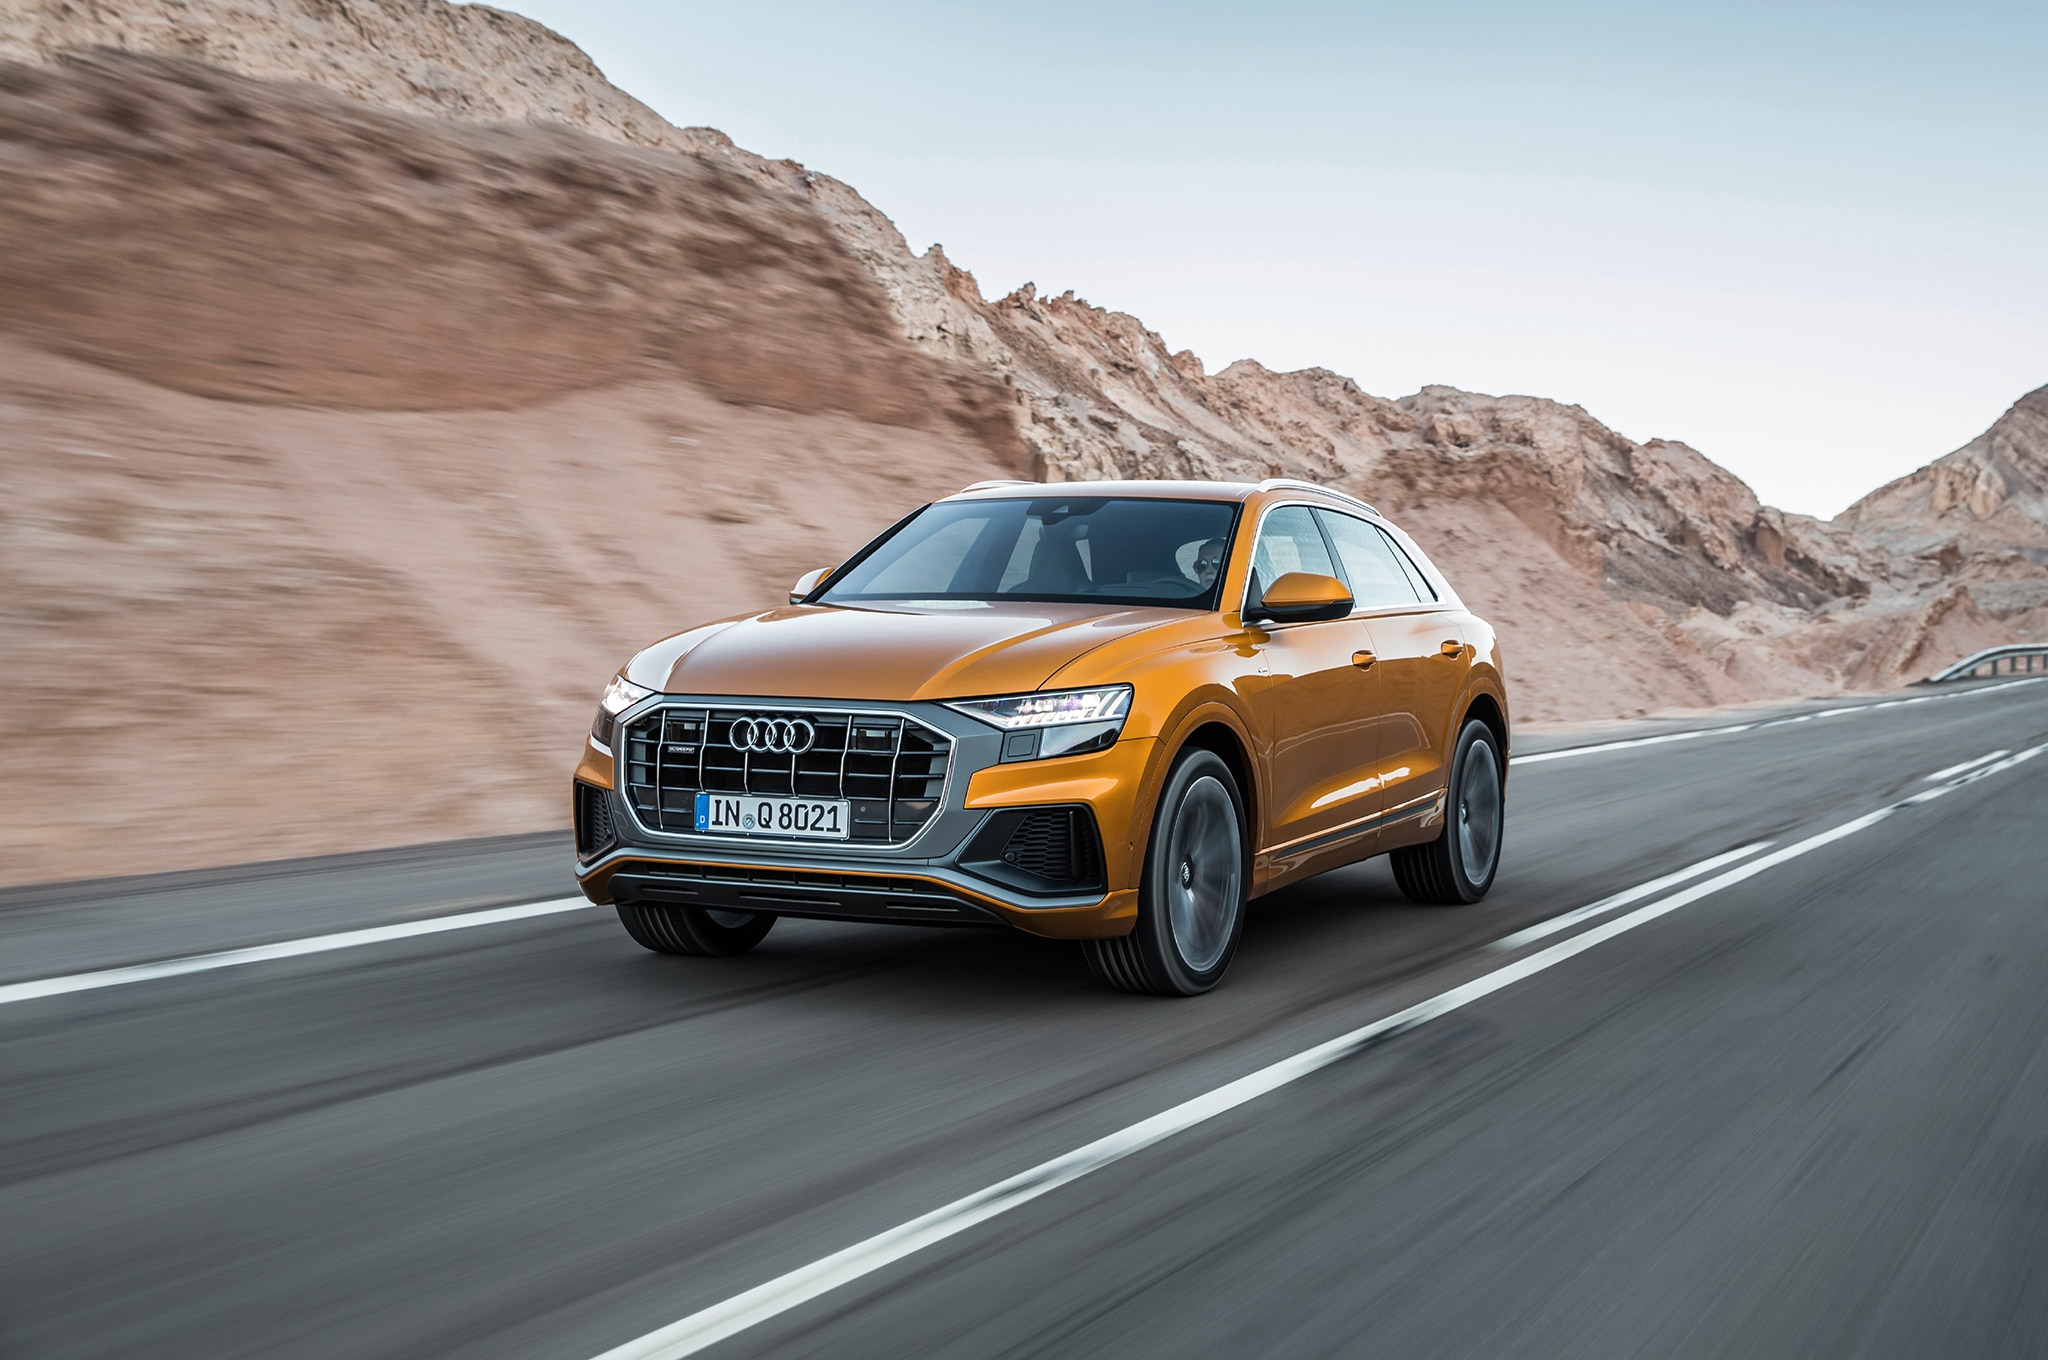 2019 Audi Q8 First Drive Review | Automobile Magazine